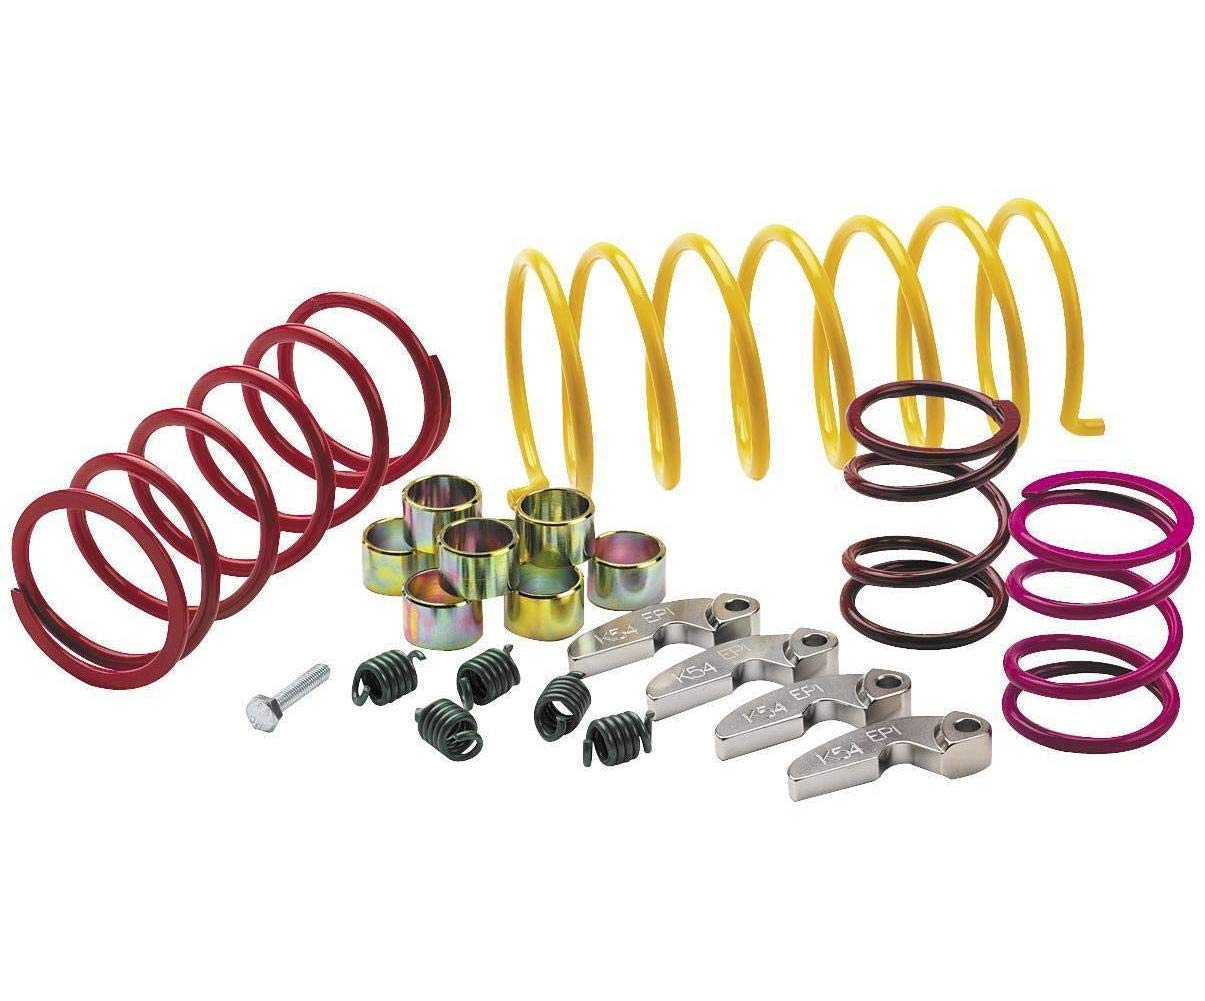 EPI WE437247 Sport Utility Clutch Kit - Elevation: 0-3000ft. - Tire Size: 30-32in.